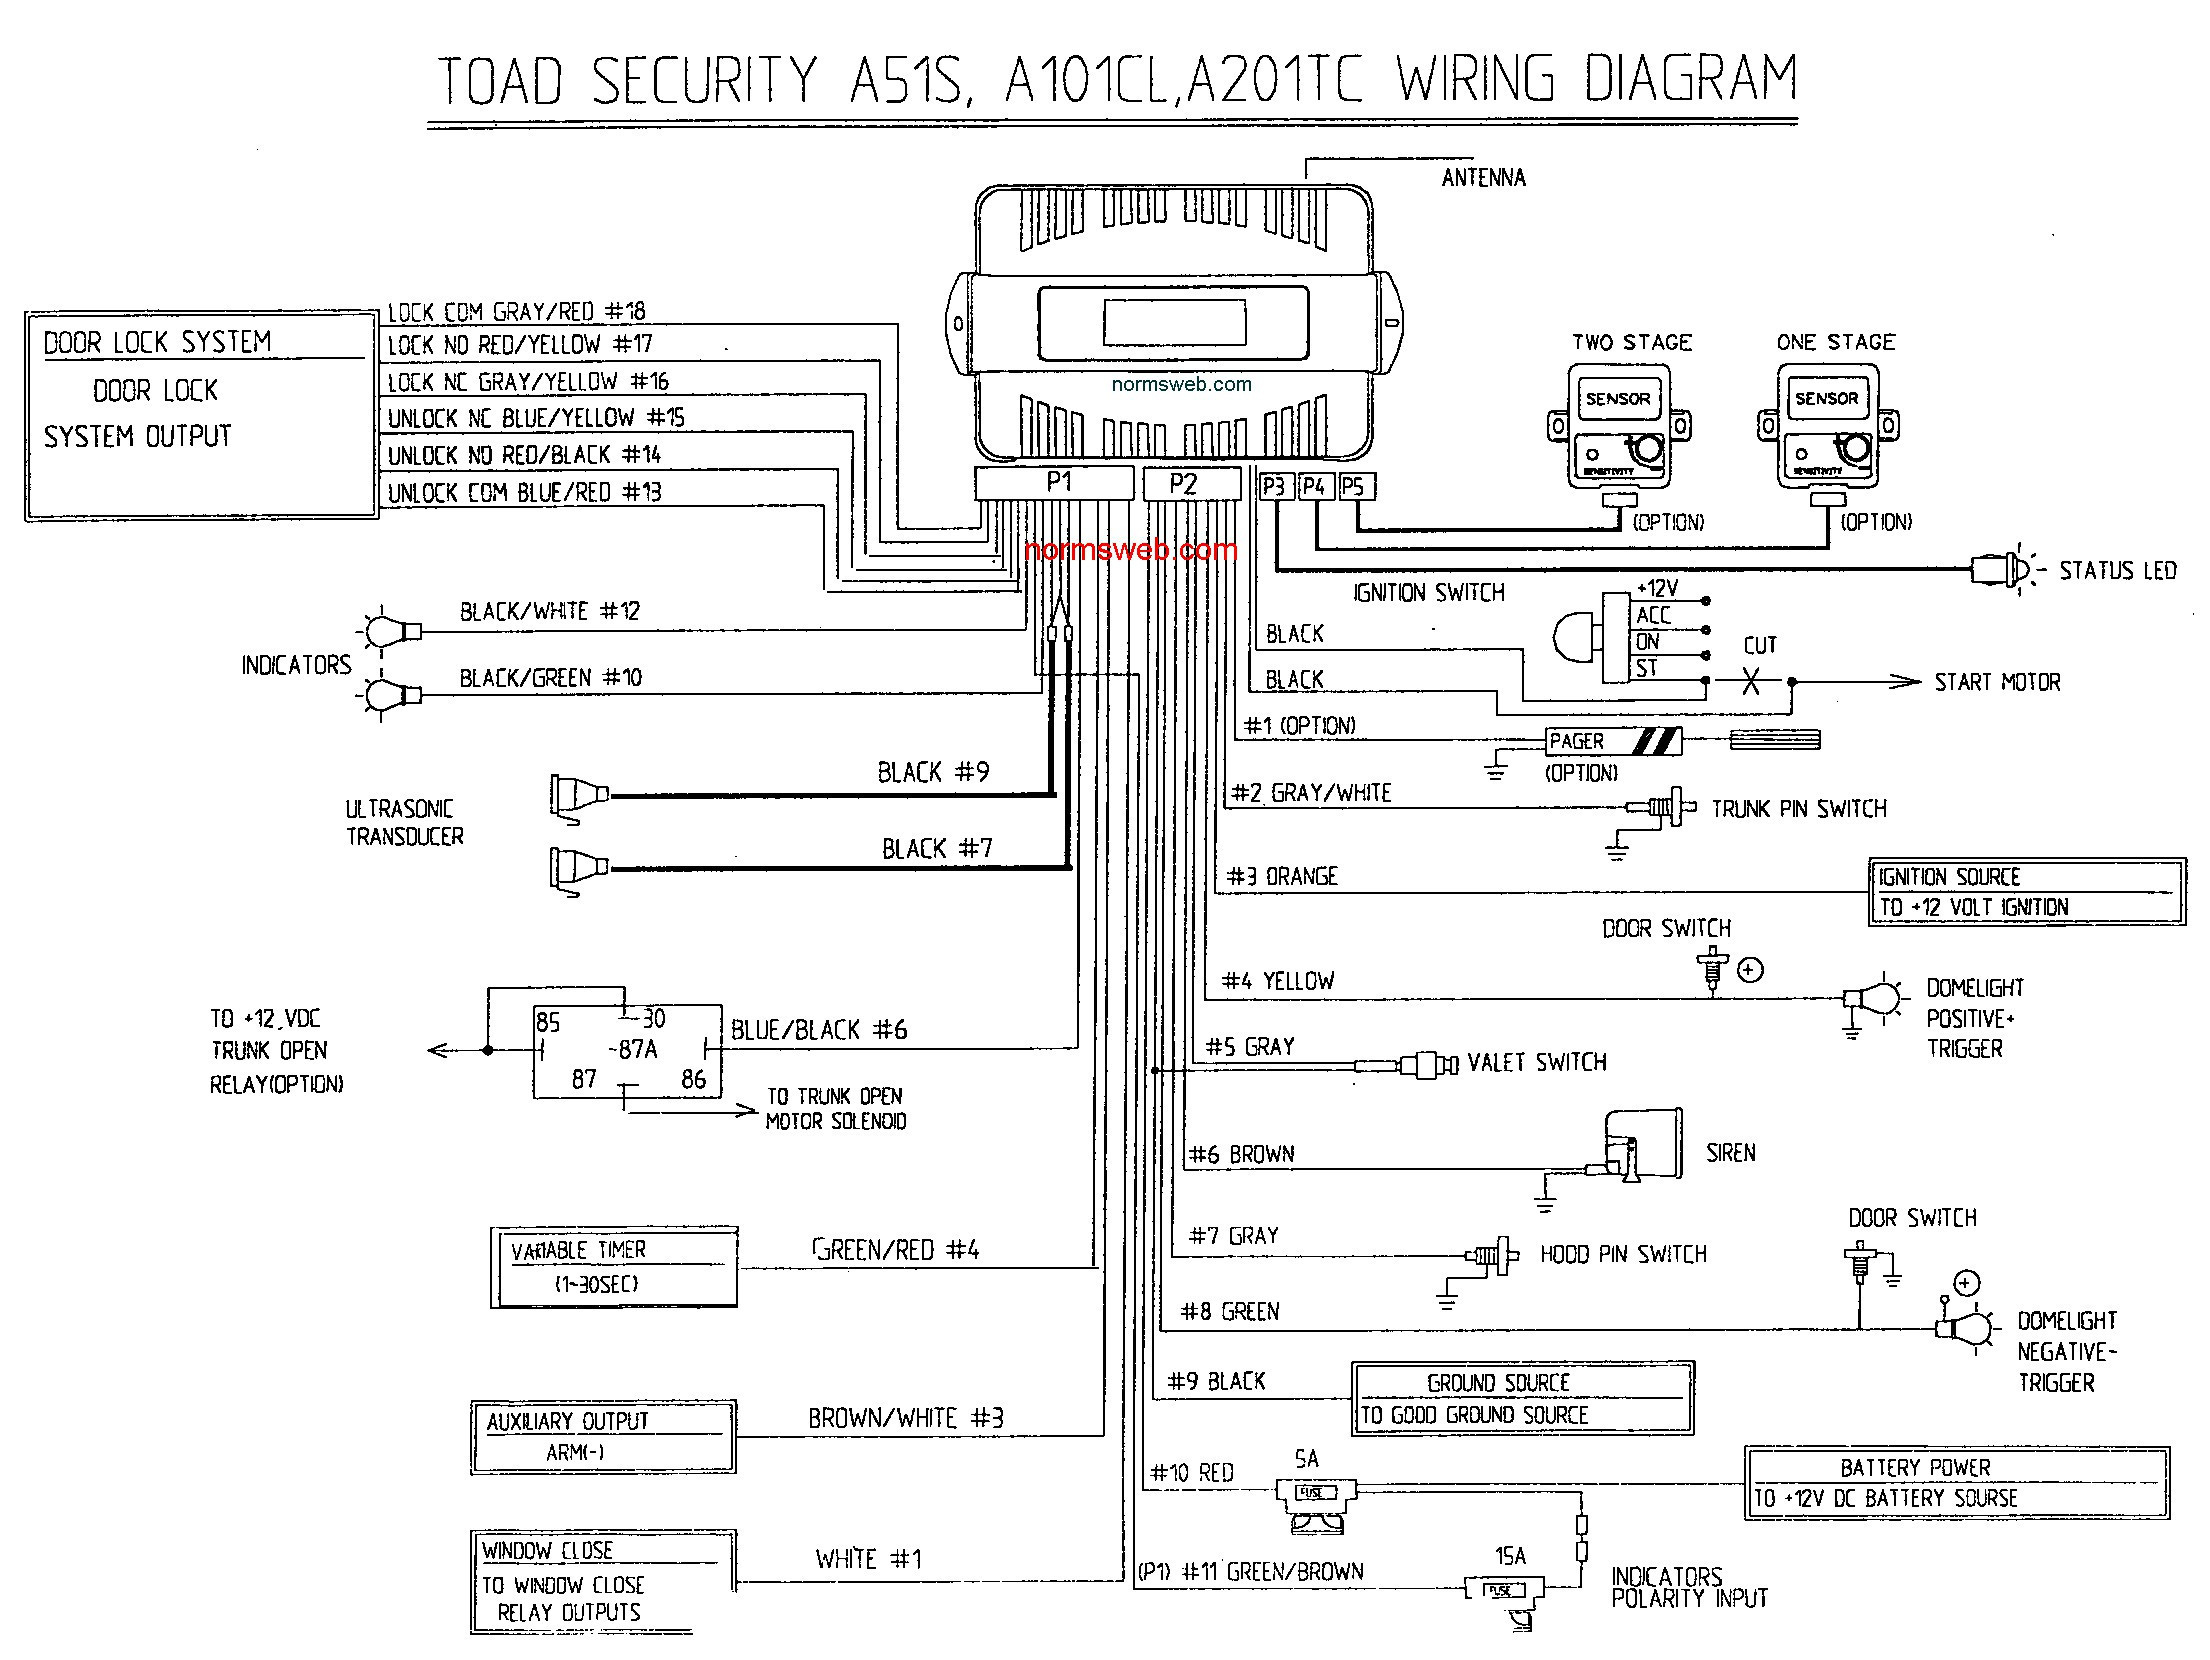 viper 5305v wiring diagram download toad a101cl car alarm wiring diagram hero car alarm wiring diagram